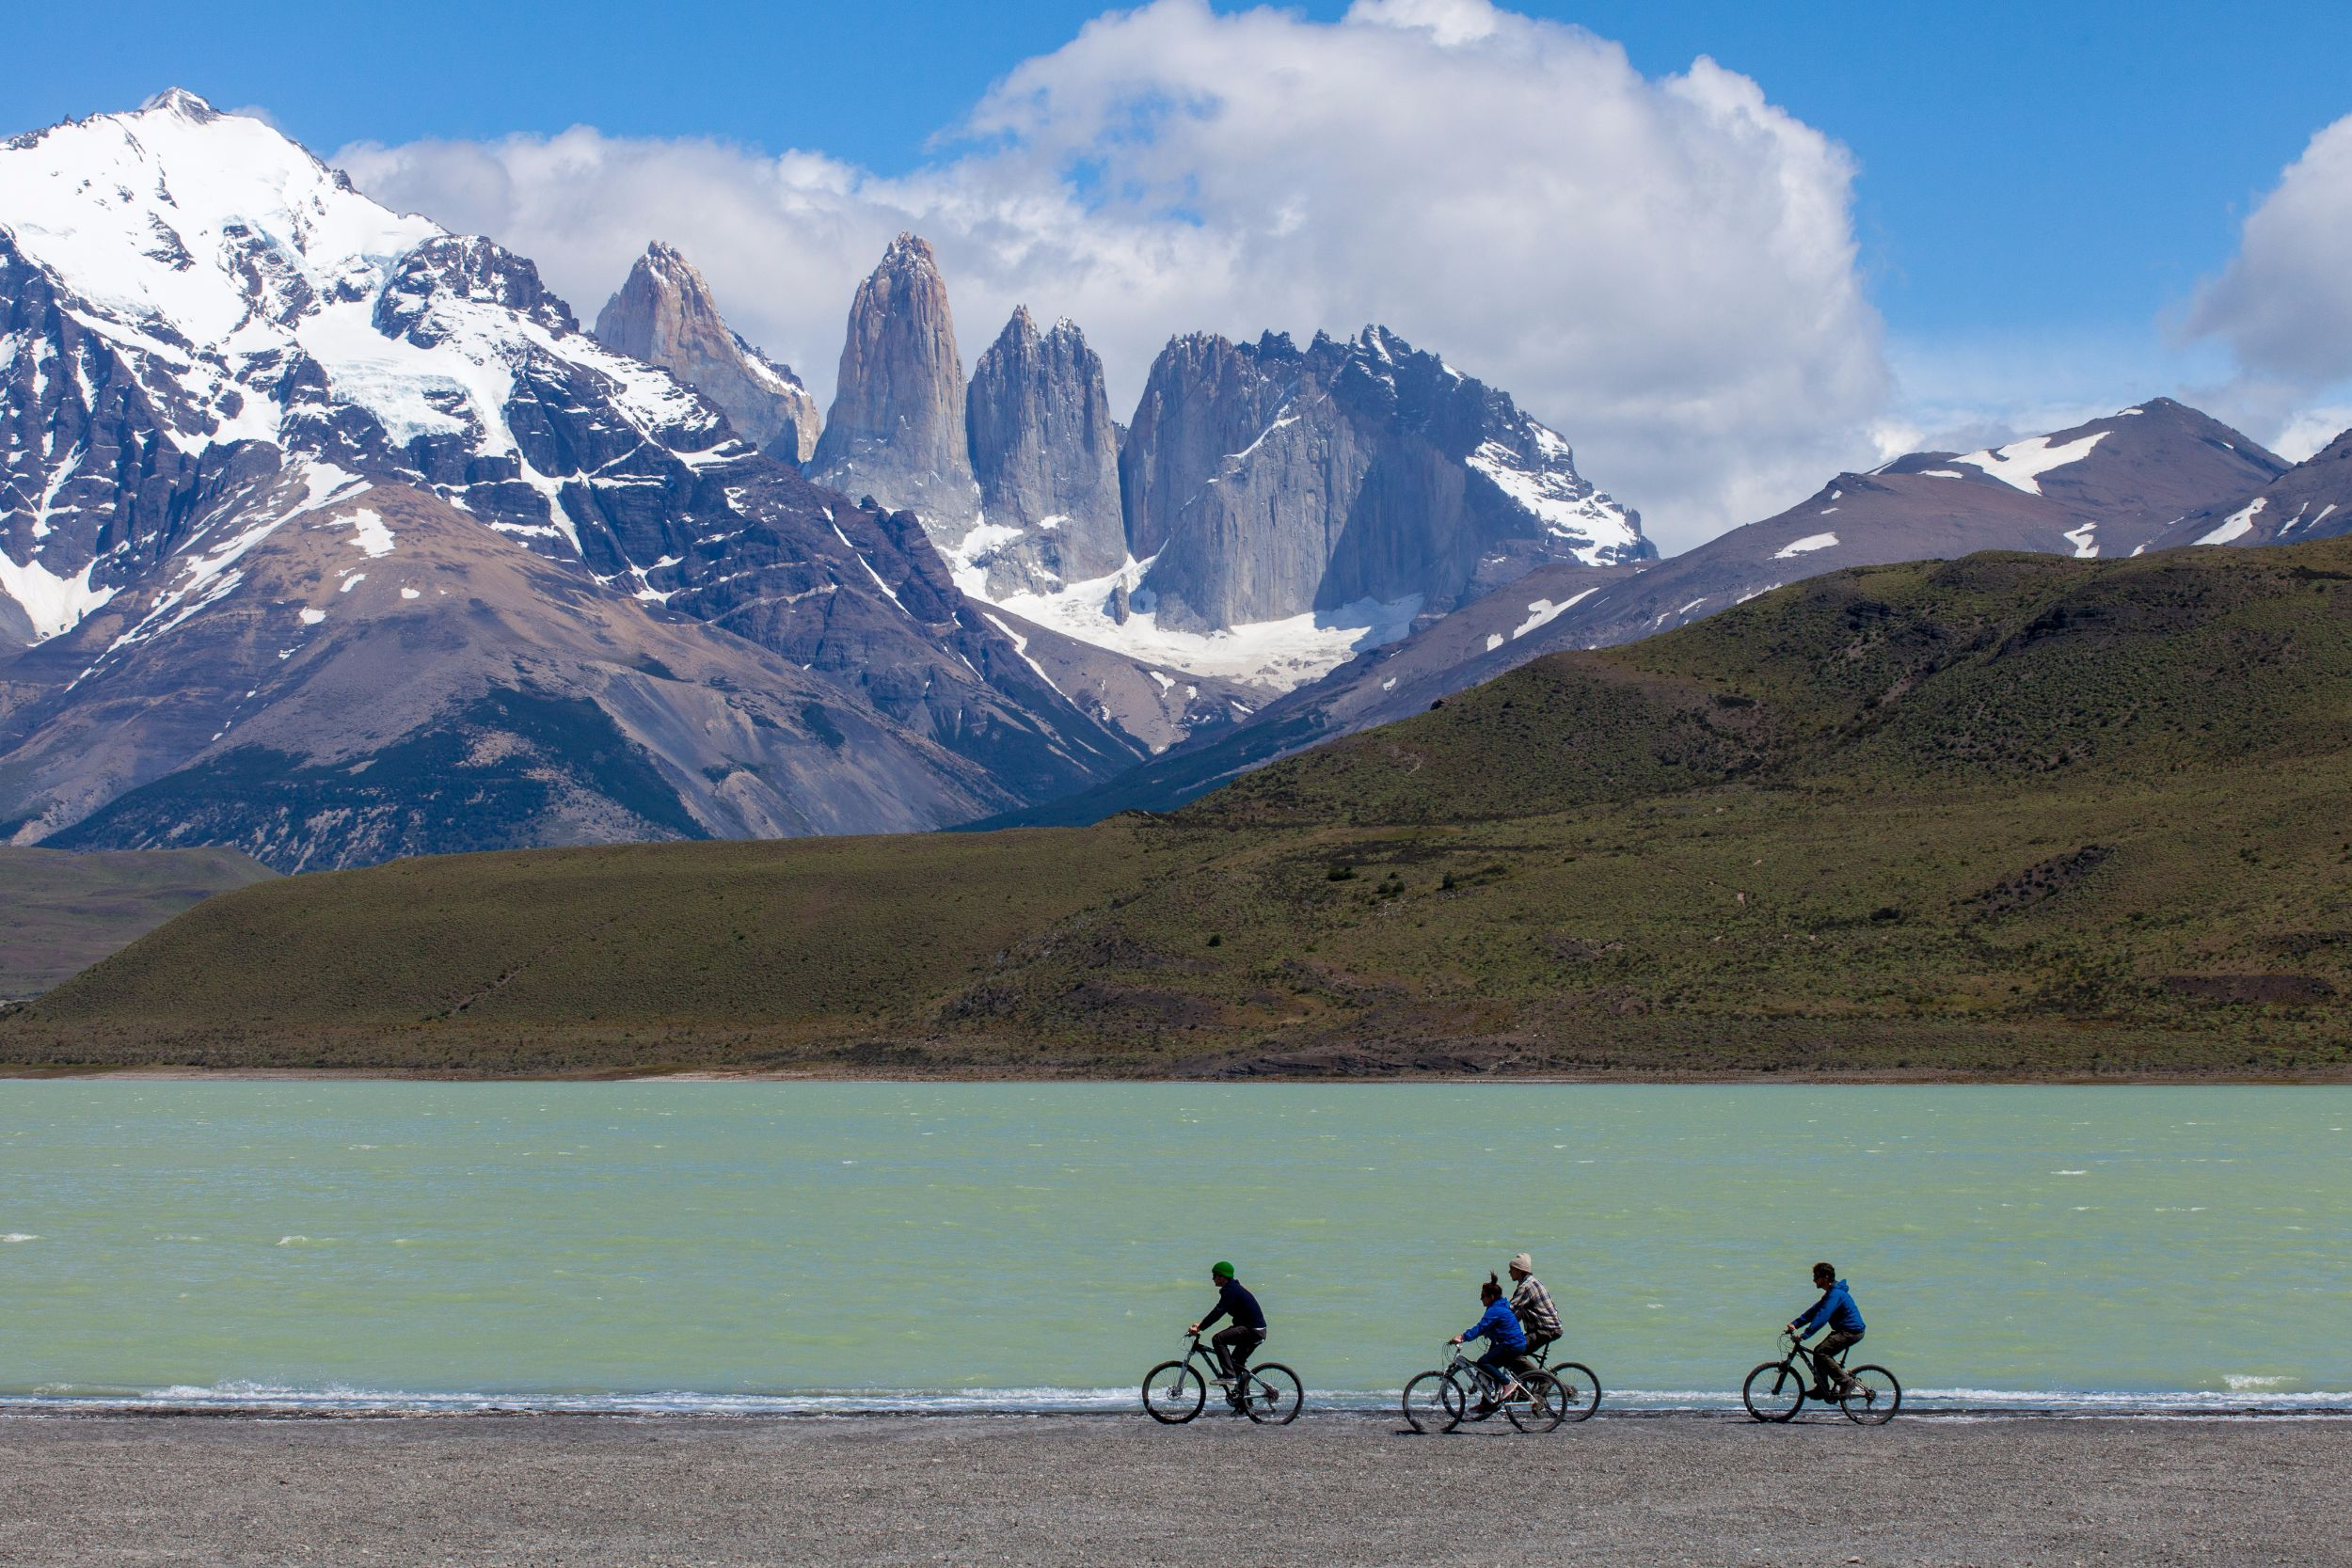 patagonia-biking-in-torres-del-paine-np---chile_16009423556_o.jpg